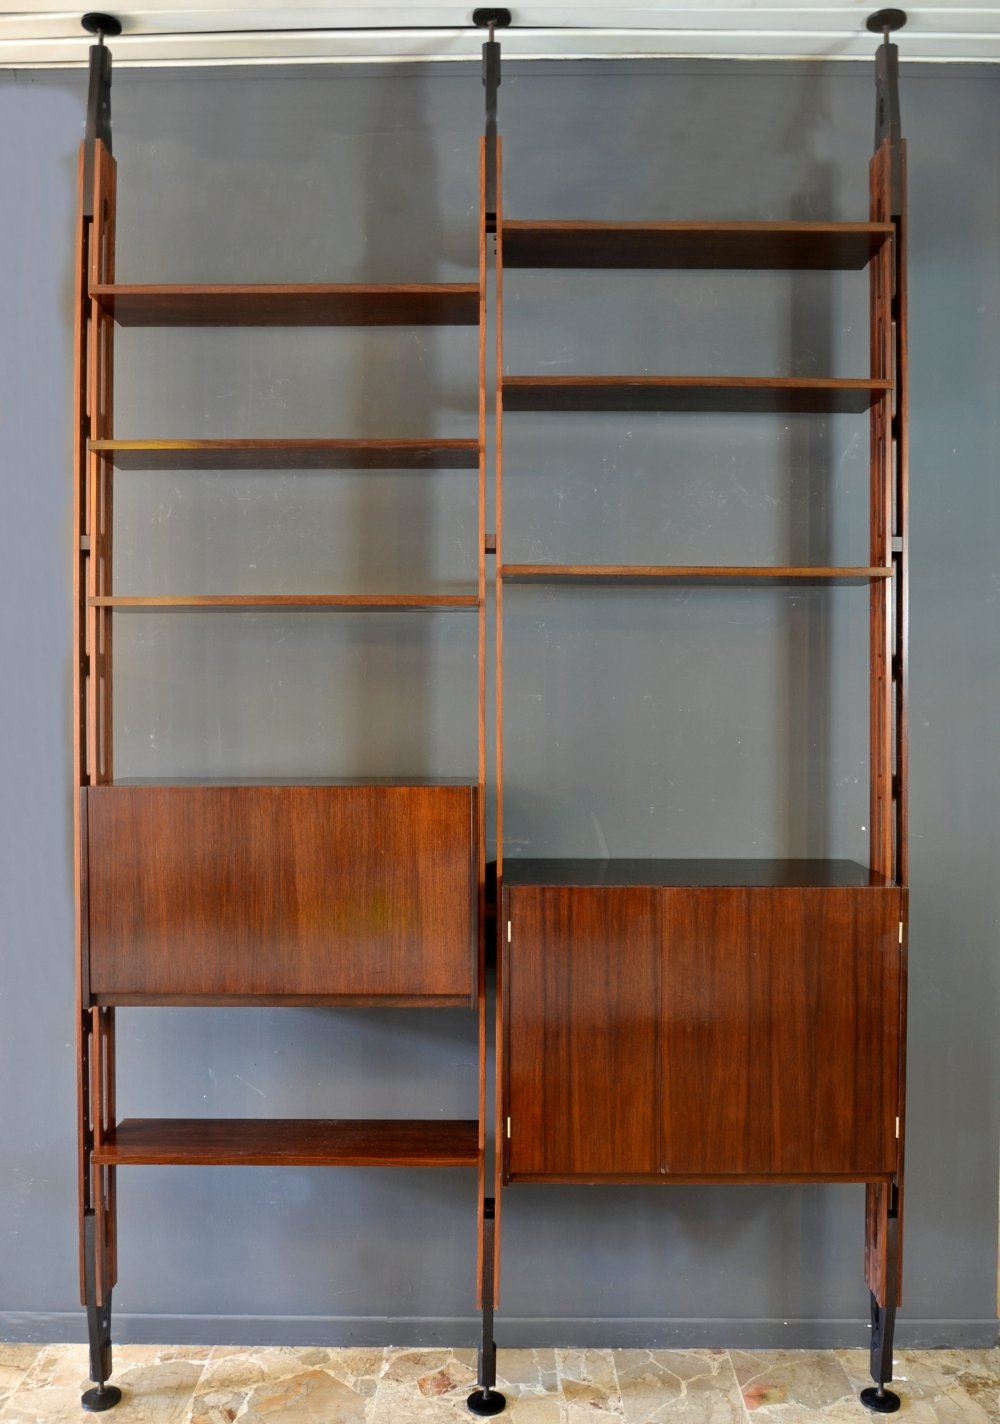 Rosewood 'Giraffa' bookcase by Paolo Tilche for Arform, Italy, 1960s